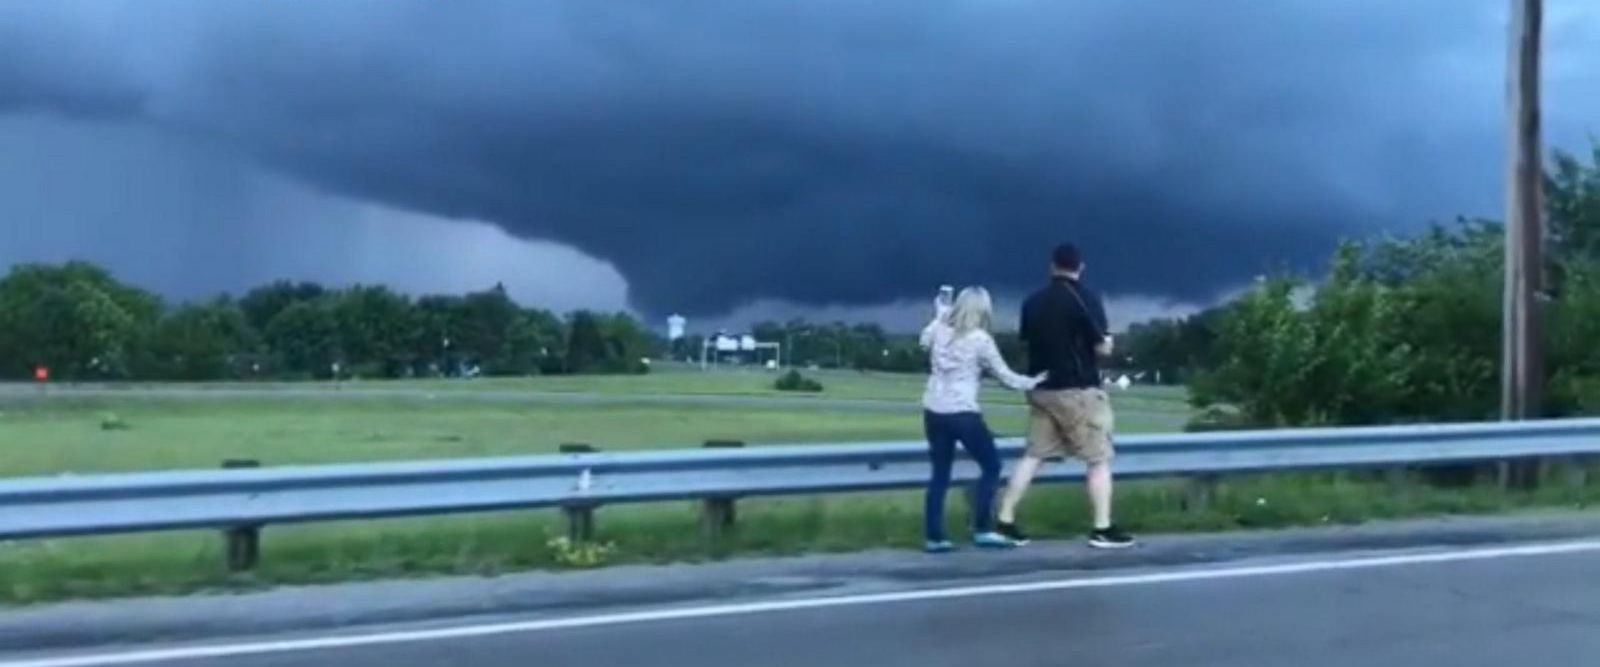 VIDEO: Severe weather around the country heading into Memorial Day weekend